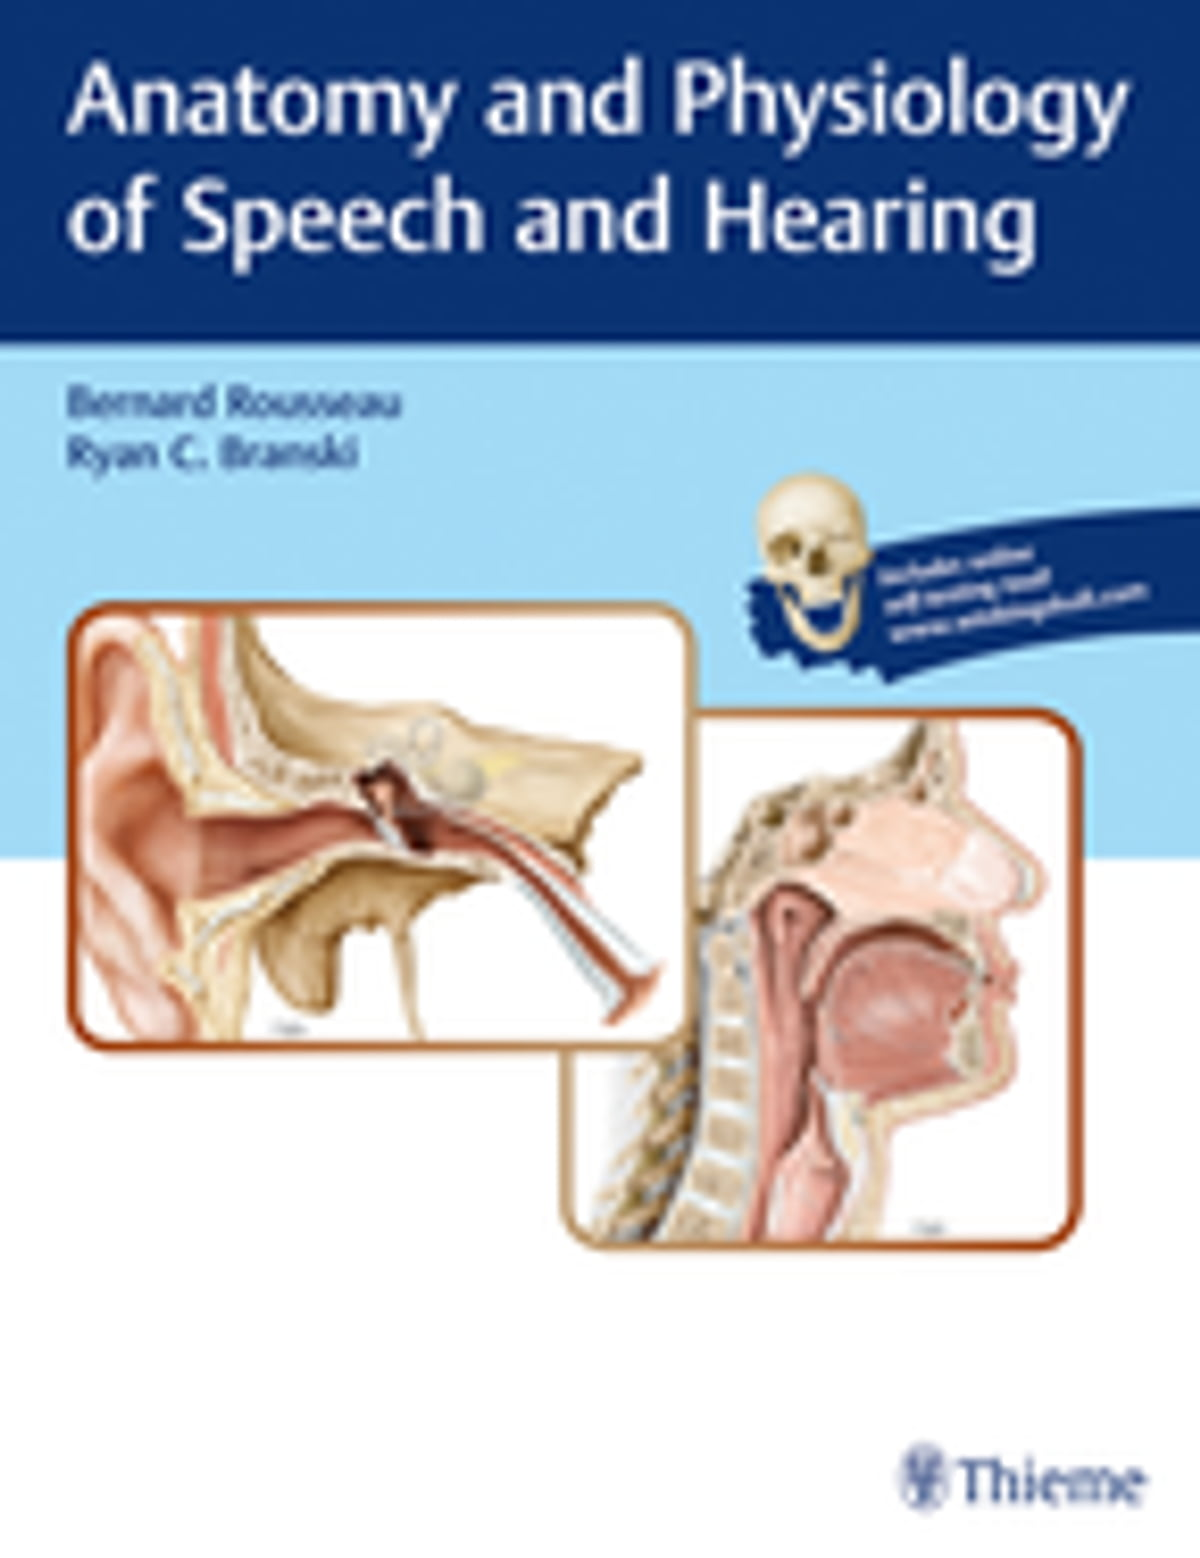 Anatomy And Physiology Of Speech And Hearing Ebook Di